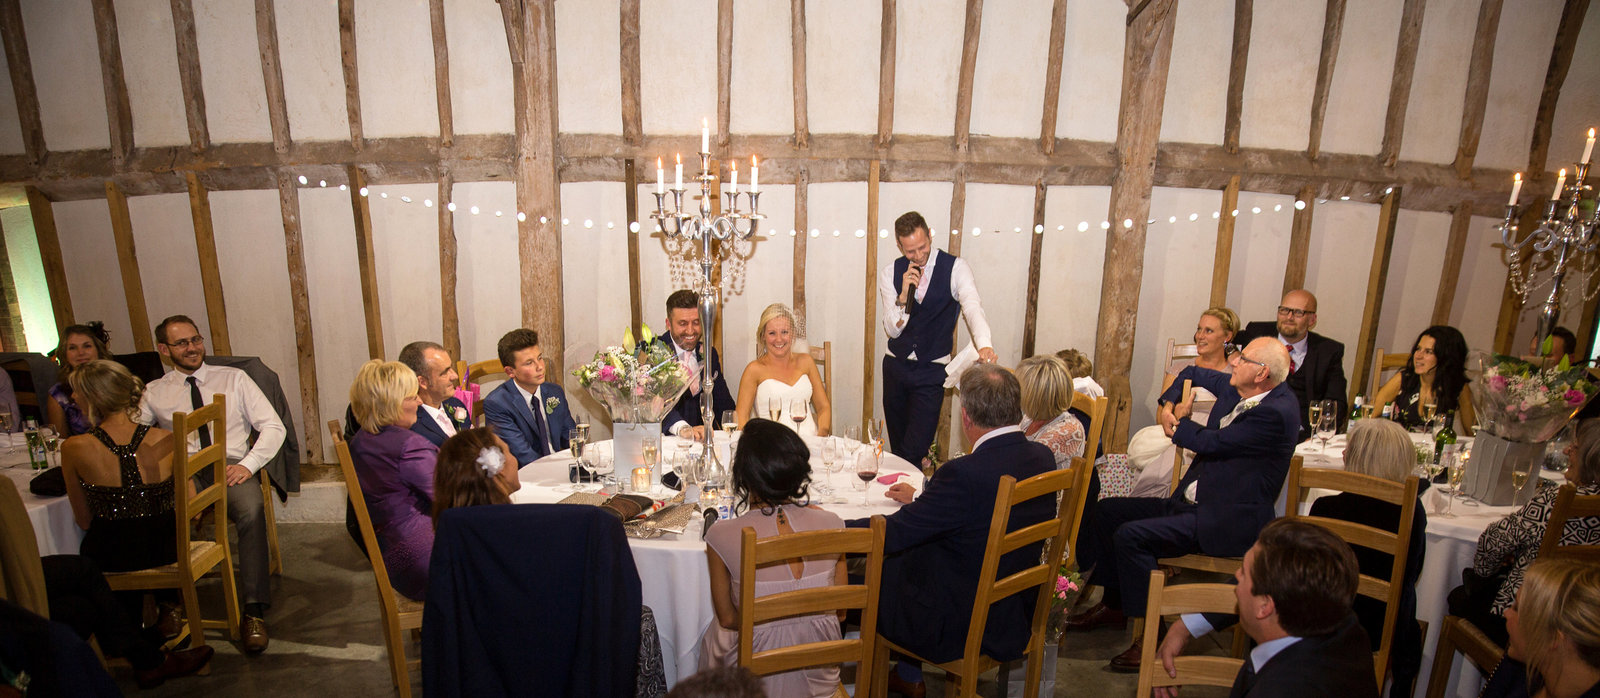 adorlee-0832-southend-barns-wedding-photographer-chichester-west-sussex